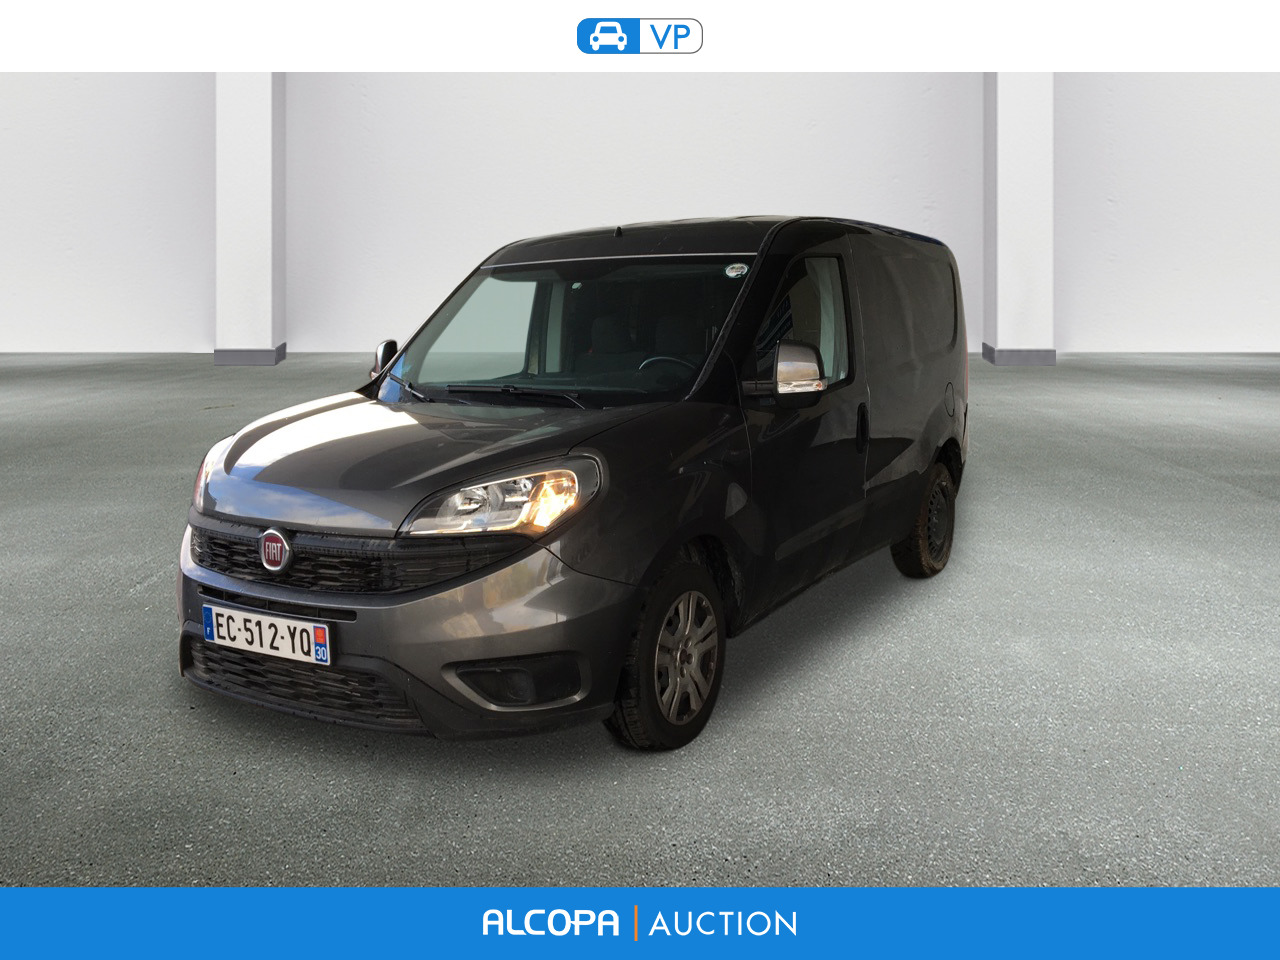 fiat doblo doblo cargo 1 6l mjt 90 pack professional bva alcopa auction. Black Bedroom Furniture Sets. Home Design Ideas